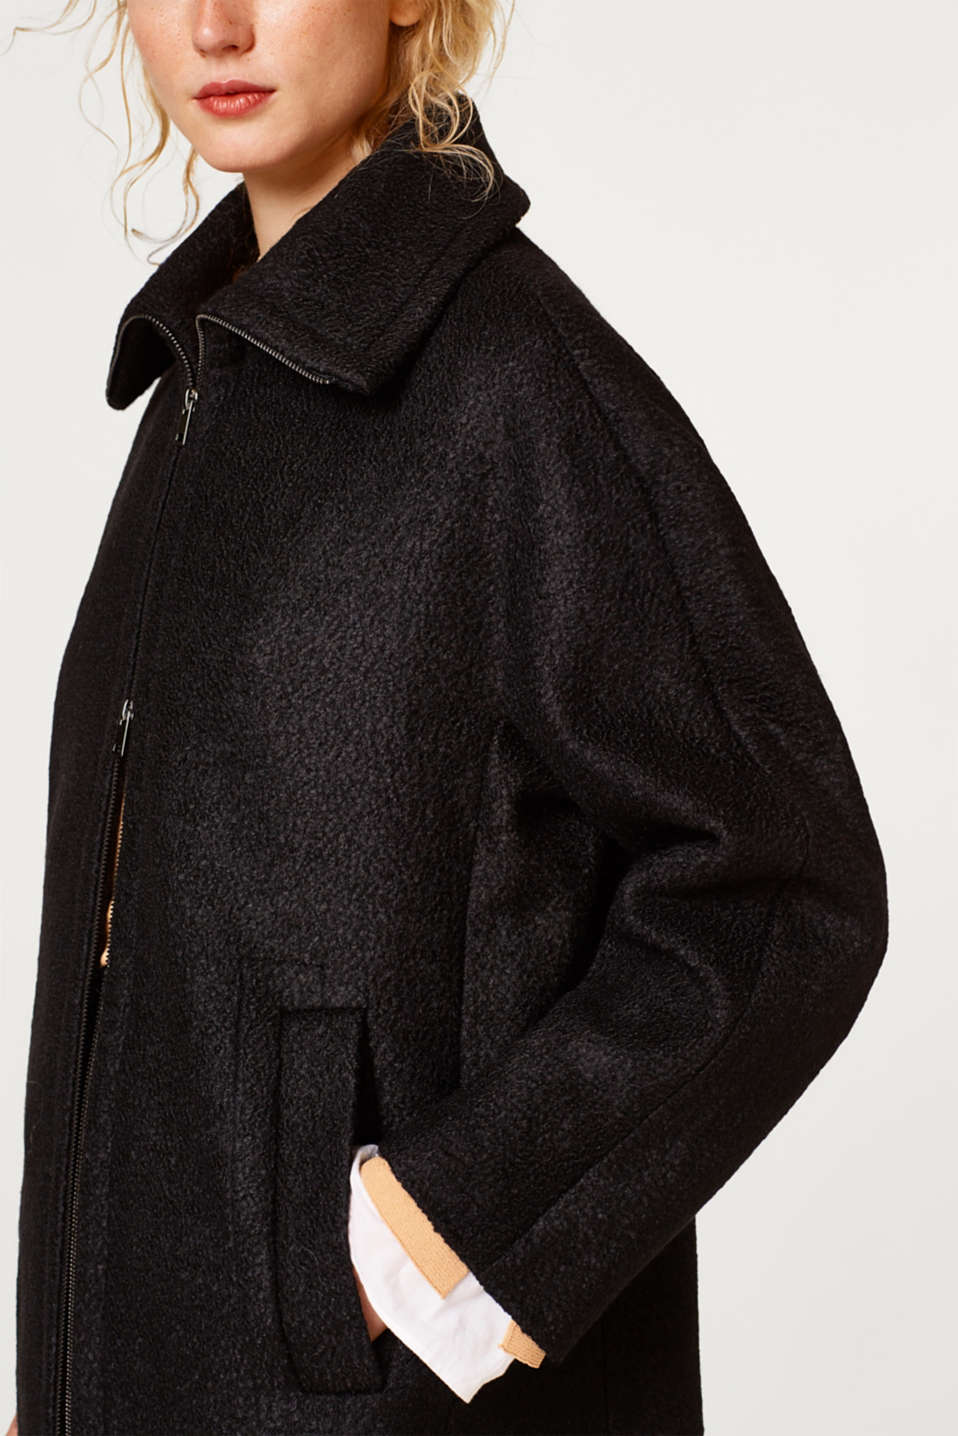 Coat with textured wool